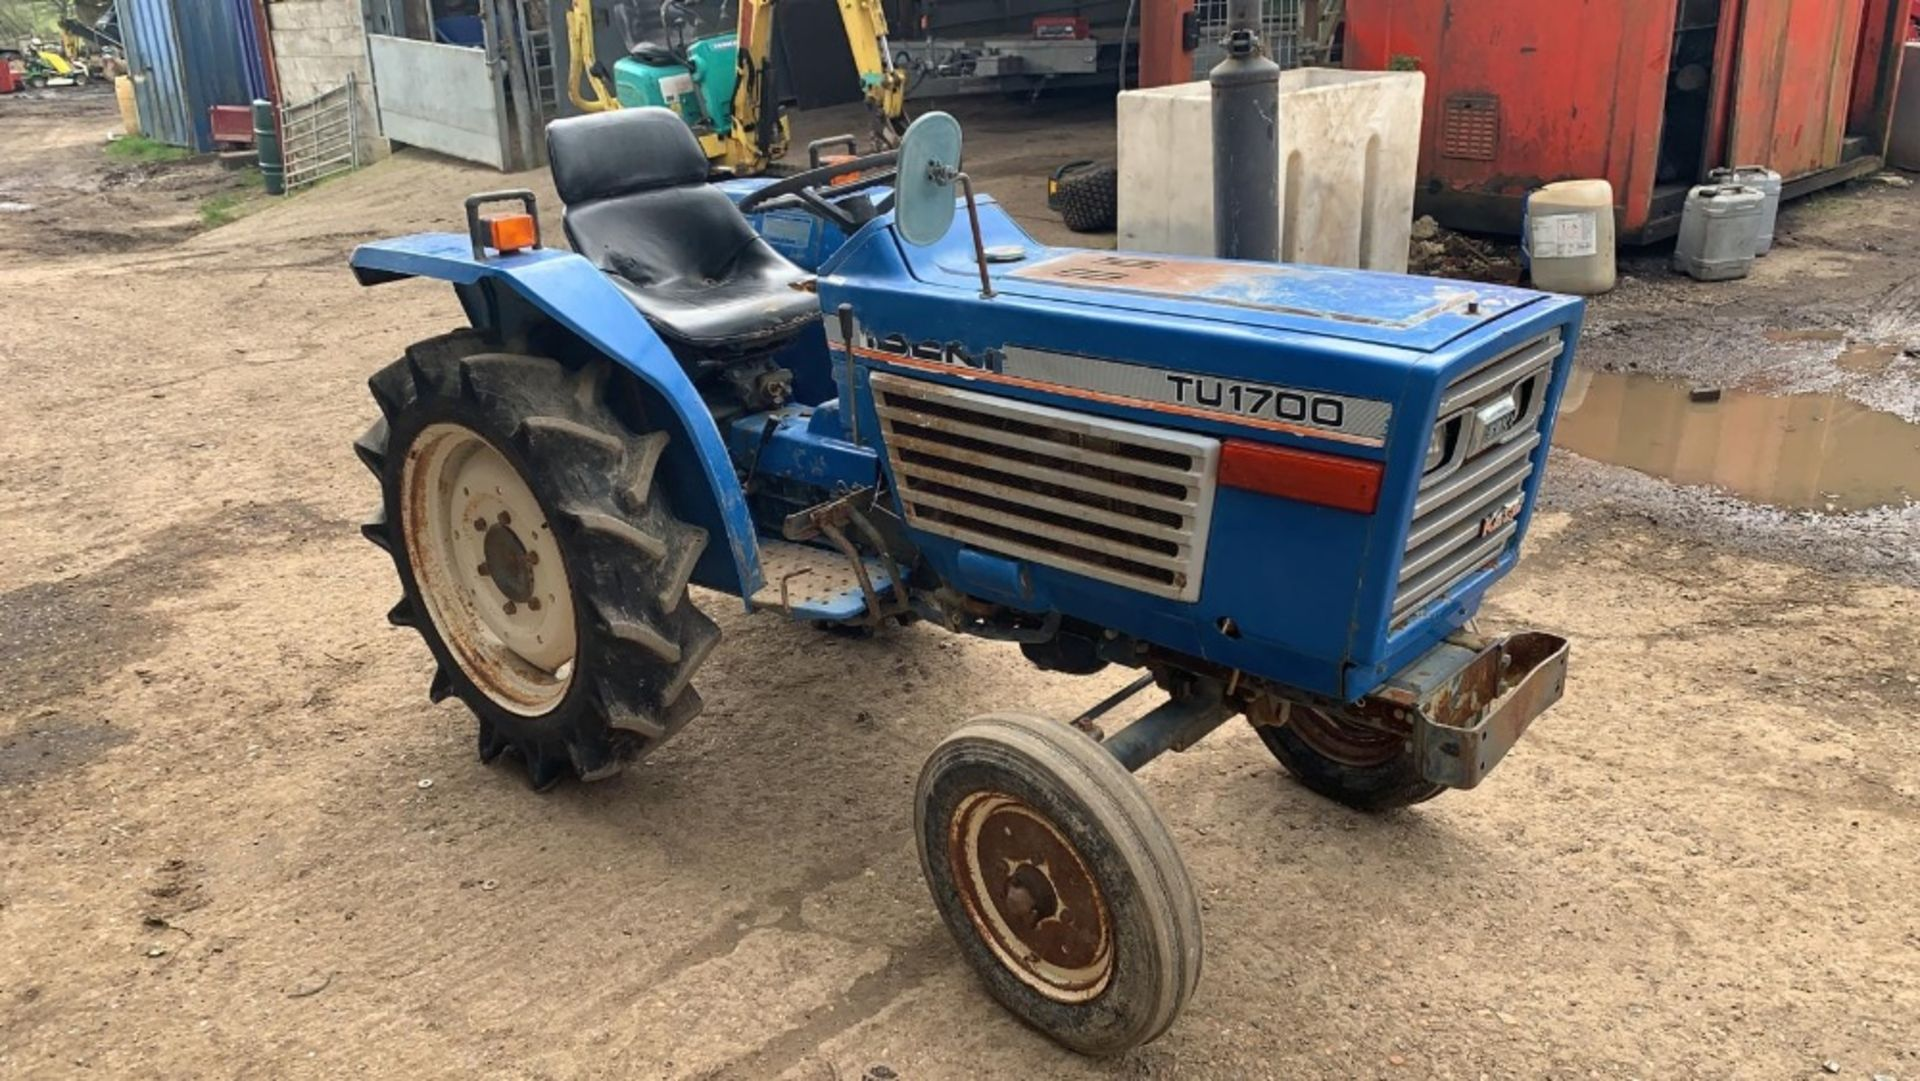 Lot 2008 - ISEKI TU1700 COMPACT TRACTOR, 2WD, RECENT REAR TYRE REPLACEMENT. VENDOR'S NOTES: THIS IS NOT A NEW